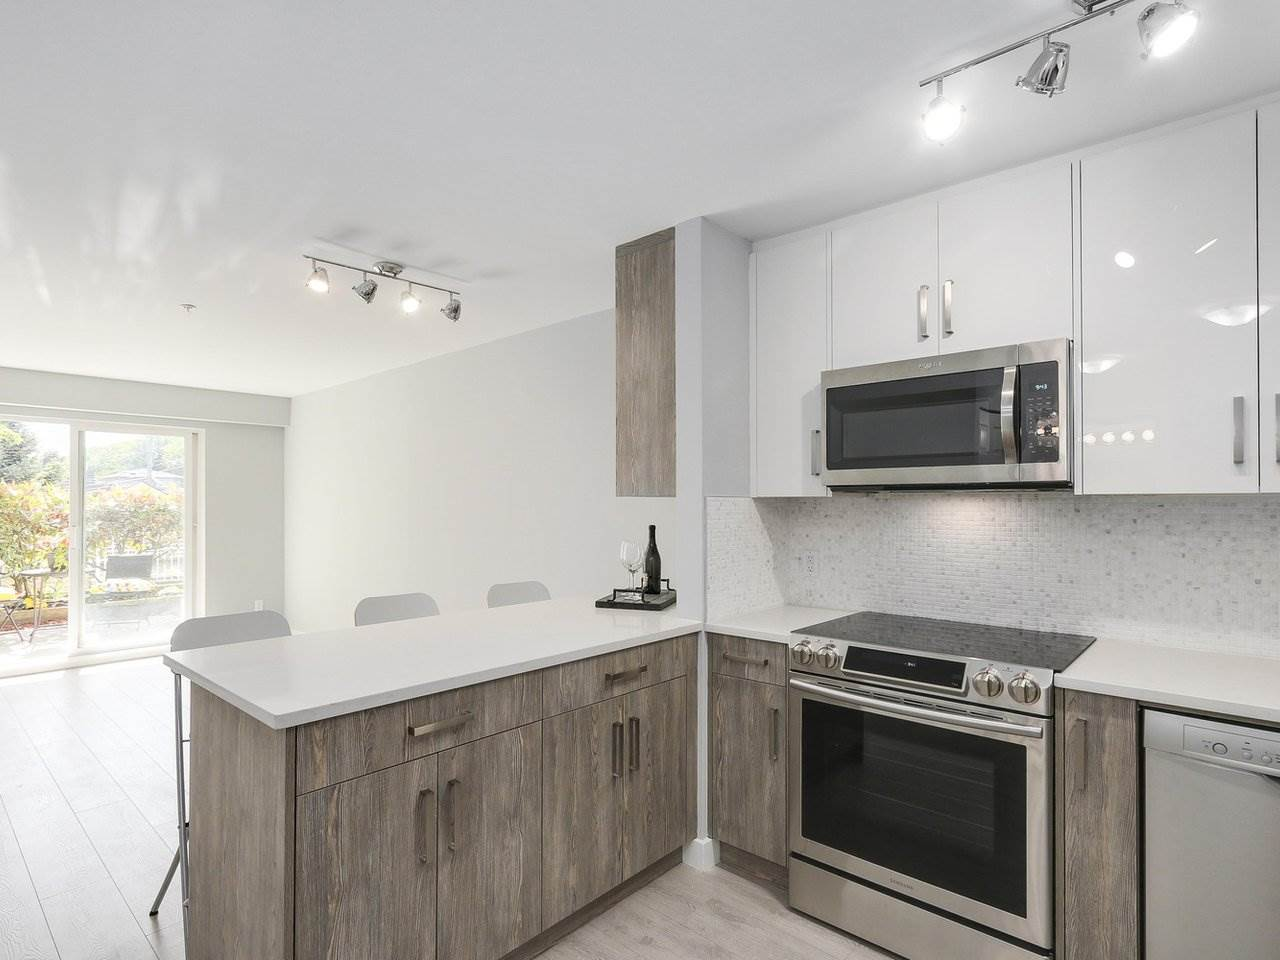 "Photo 3: 102 3624 FRASER Street in Vancouver: Fraser VE Condo for sale in ""THE TRAFALGAR"" (Vancouver East)  : MLS® # R2173895"